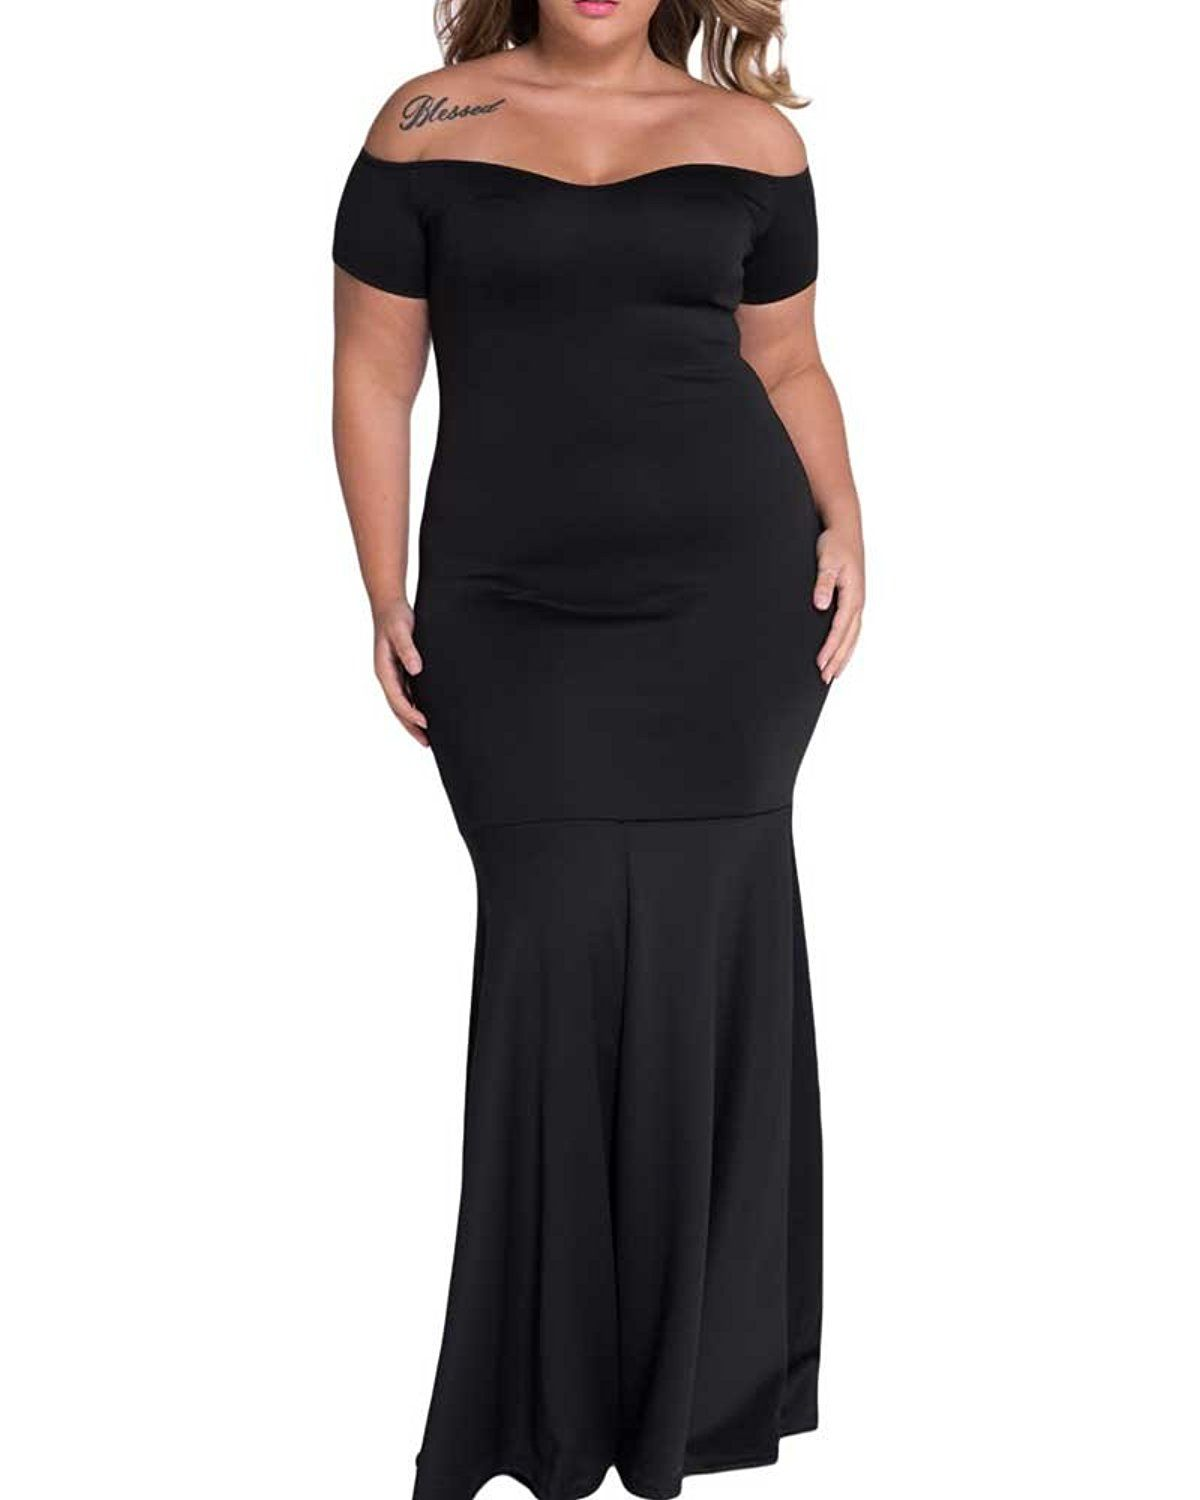 183ce539e47 Pyramid Top Women s Plus Size Off Shoulder Backless Bodycon Maxi Long Dress     Startling review available here   homecoming dresses